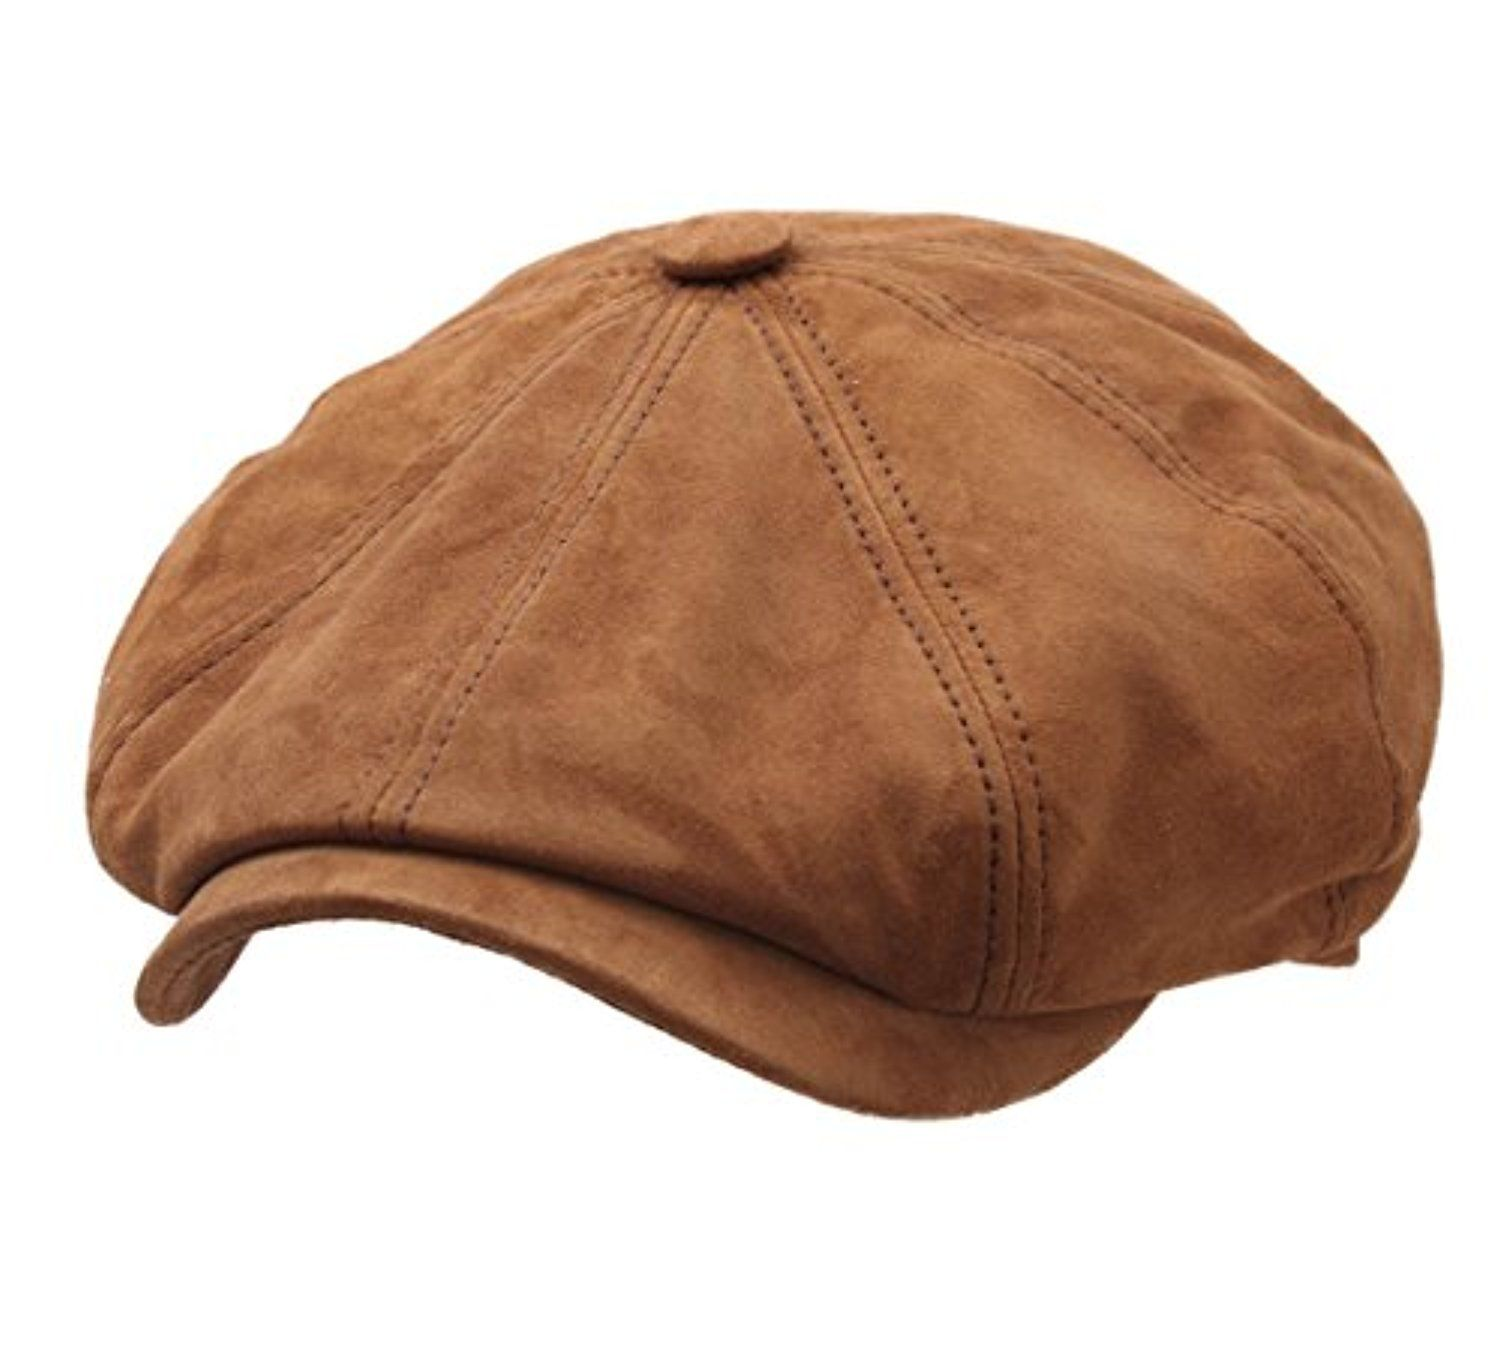 27d14411 Stetson Men's Hatteras Goat Suede Leather Flat Cap -- Awesome products  selected by Anna Churchill